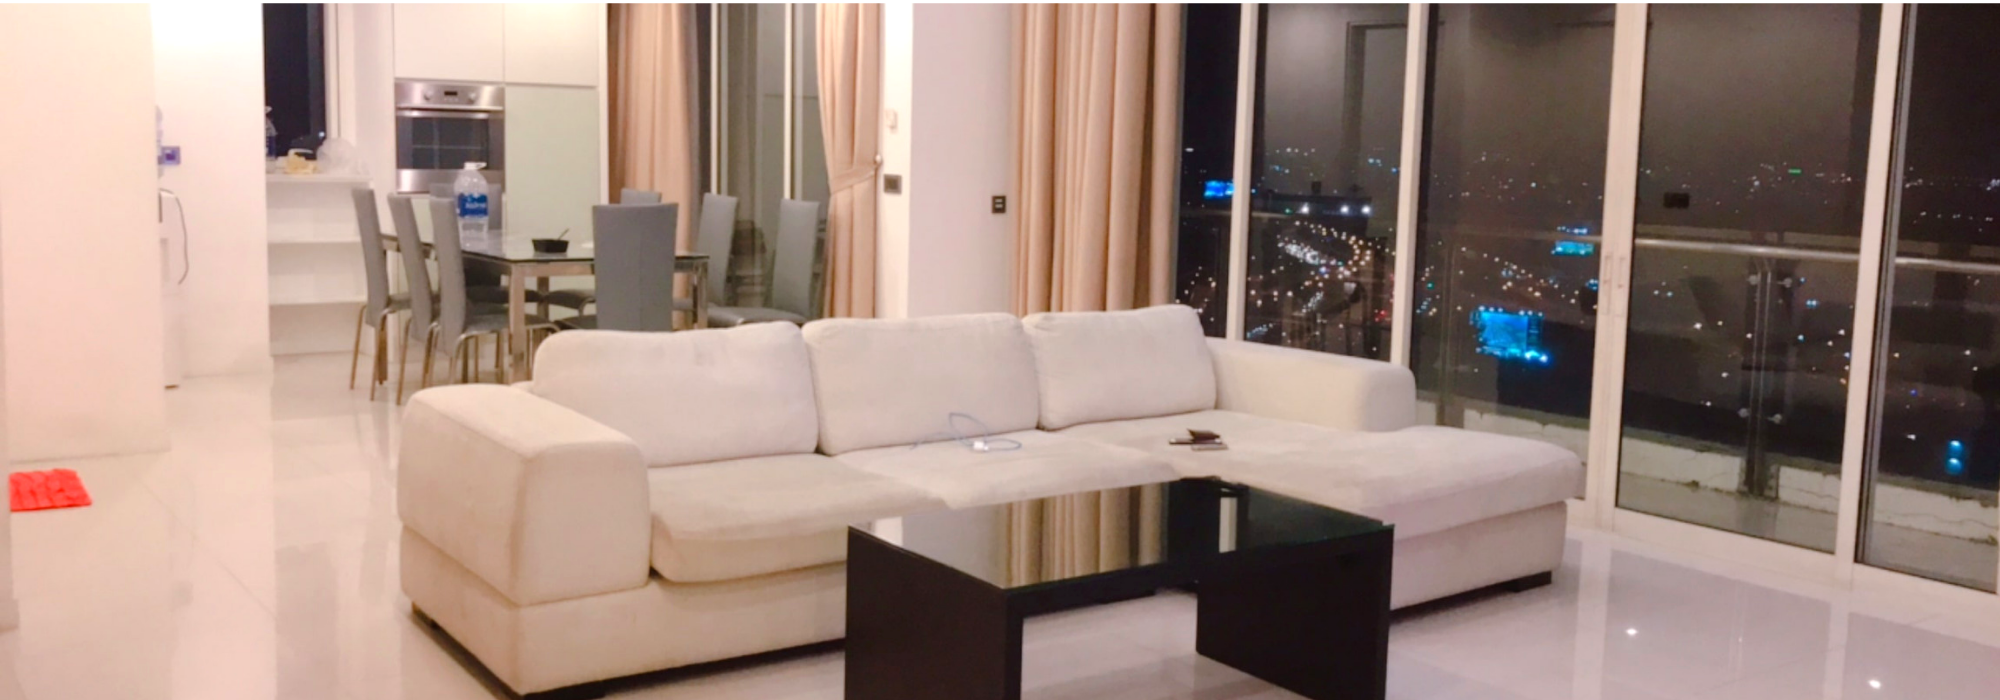 Penthouse Duplex The Estella – 3 nice bedrooms and large living room